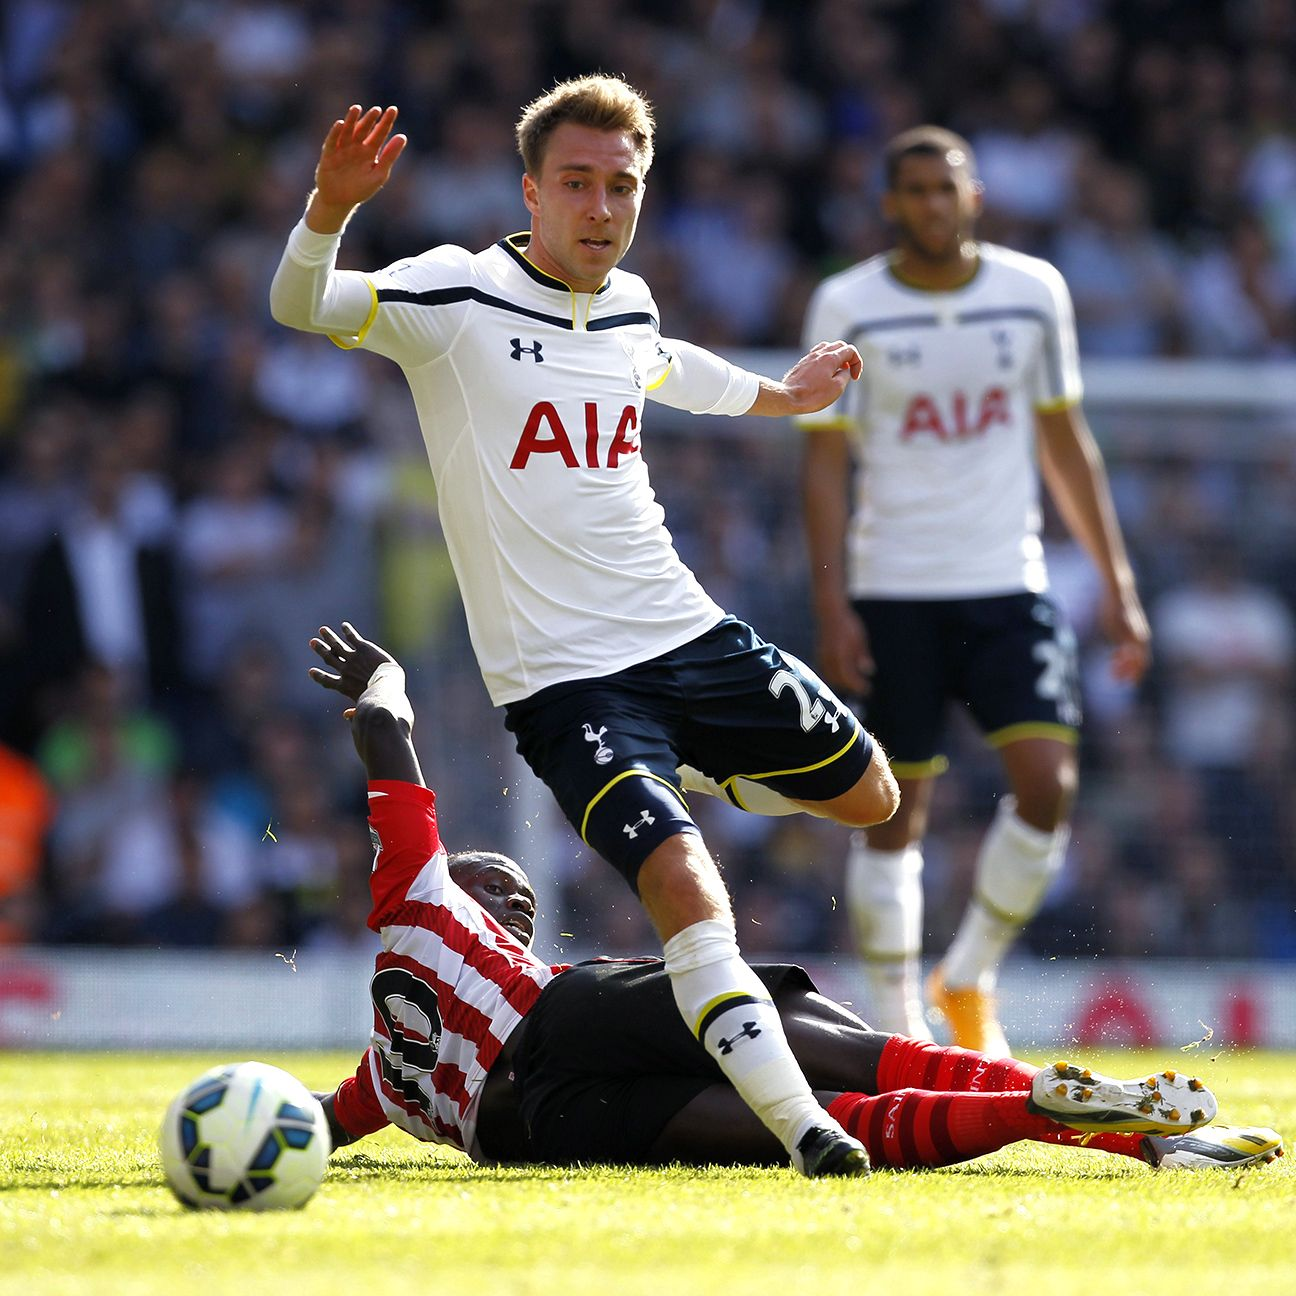 Christian Eriksen's goal helped give Spurs their first Premier League win since August.